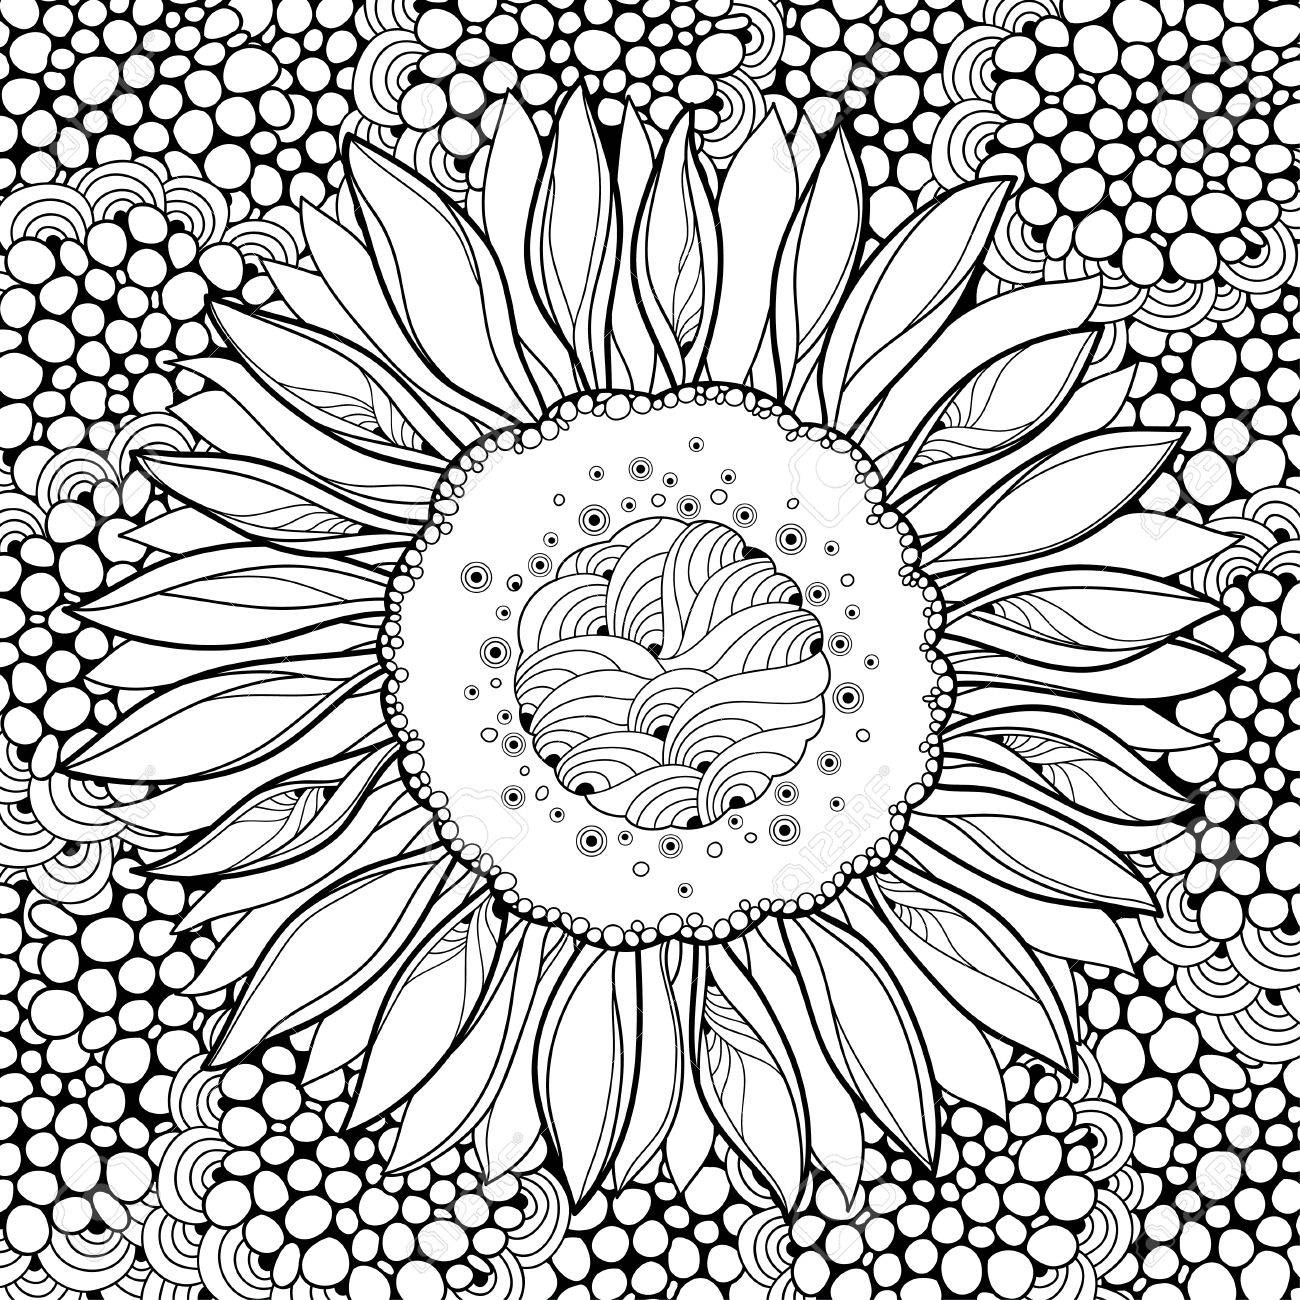 outline of a sunflower black and white sunflower drawing free download on of sunflower outline a